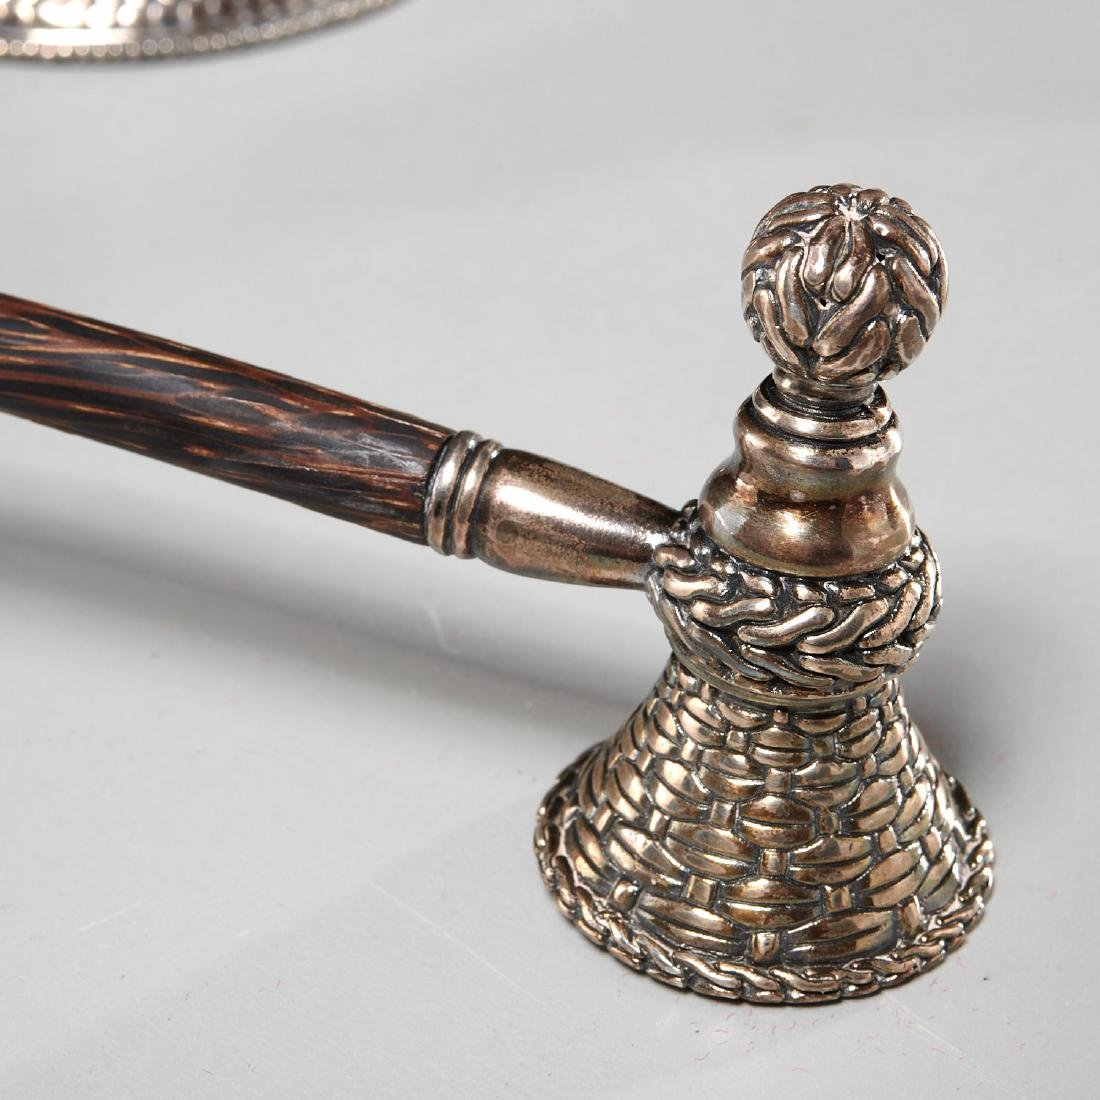 John Hardy sterling candlesticks and snuffer - 6